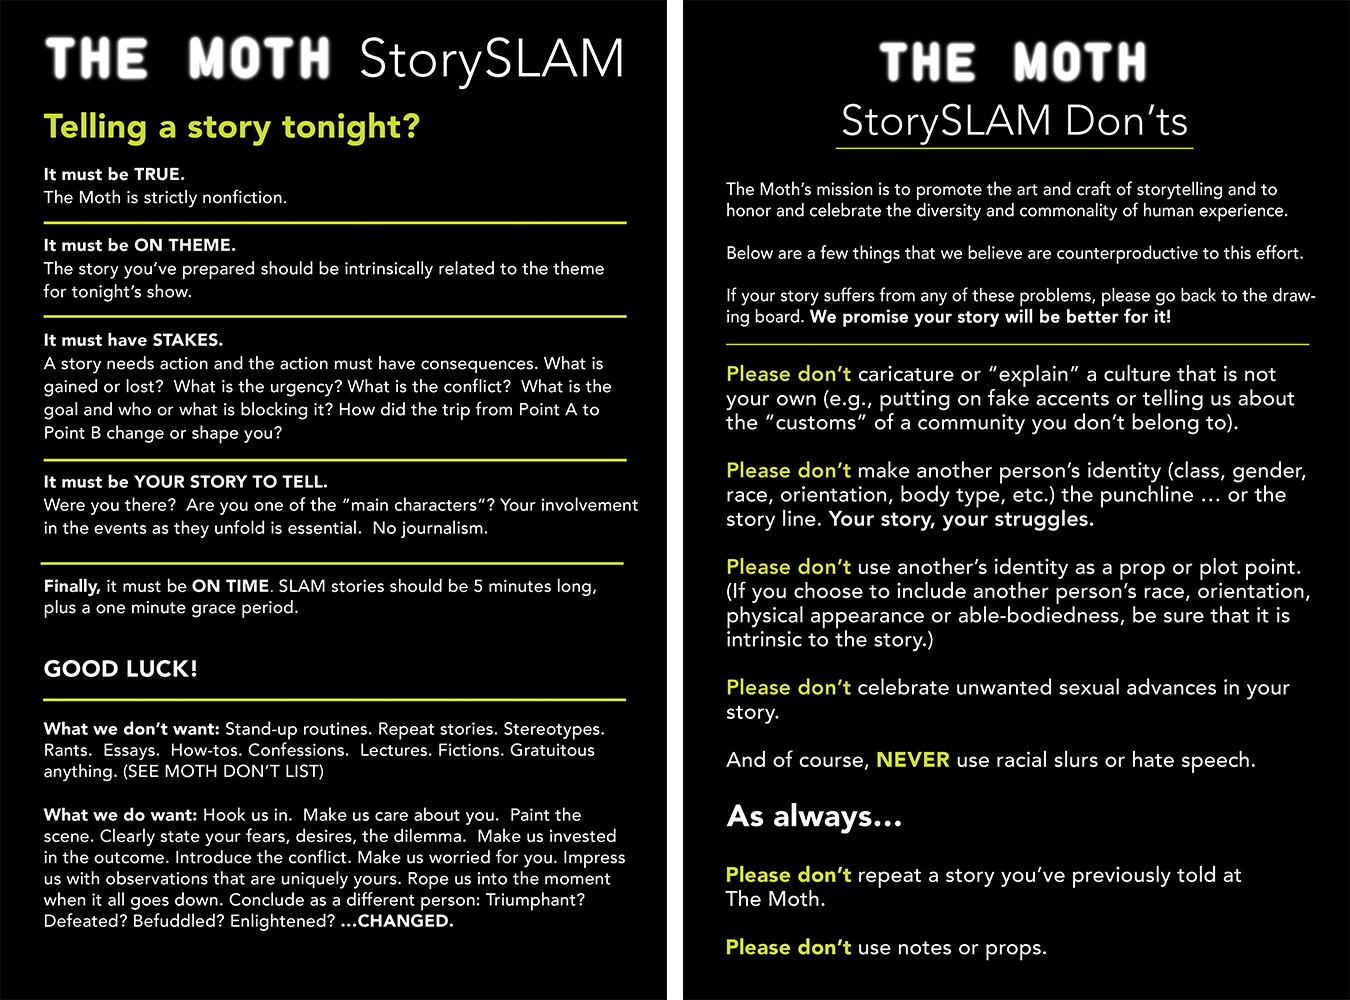 The Moth's storytelling Do's and Don'ts